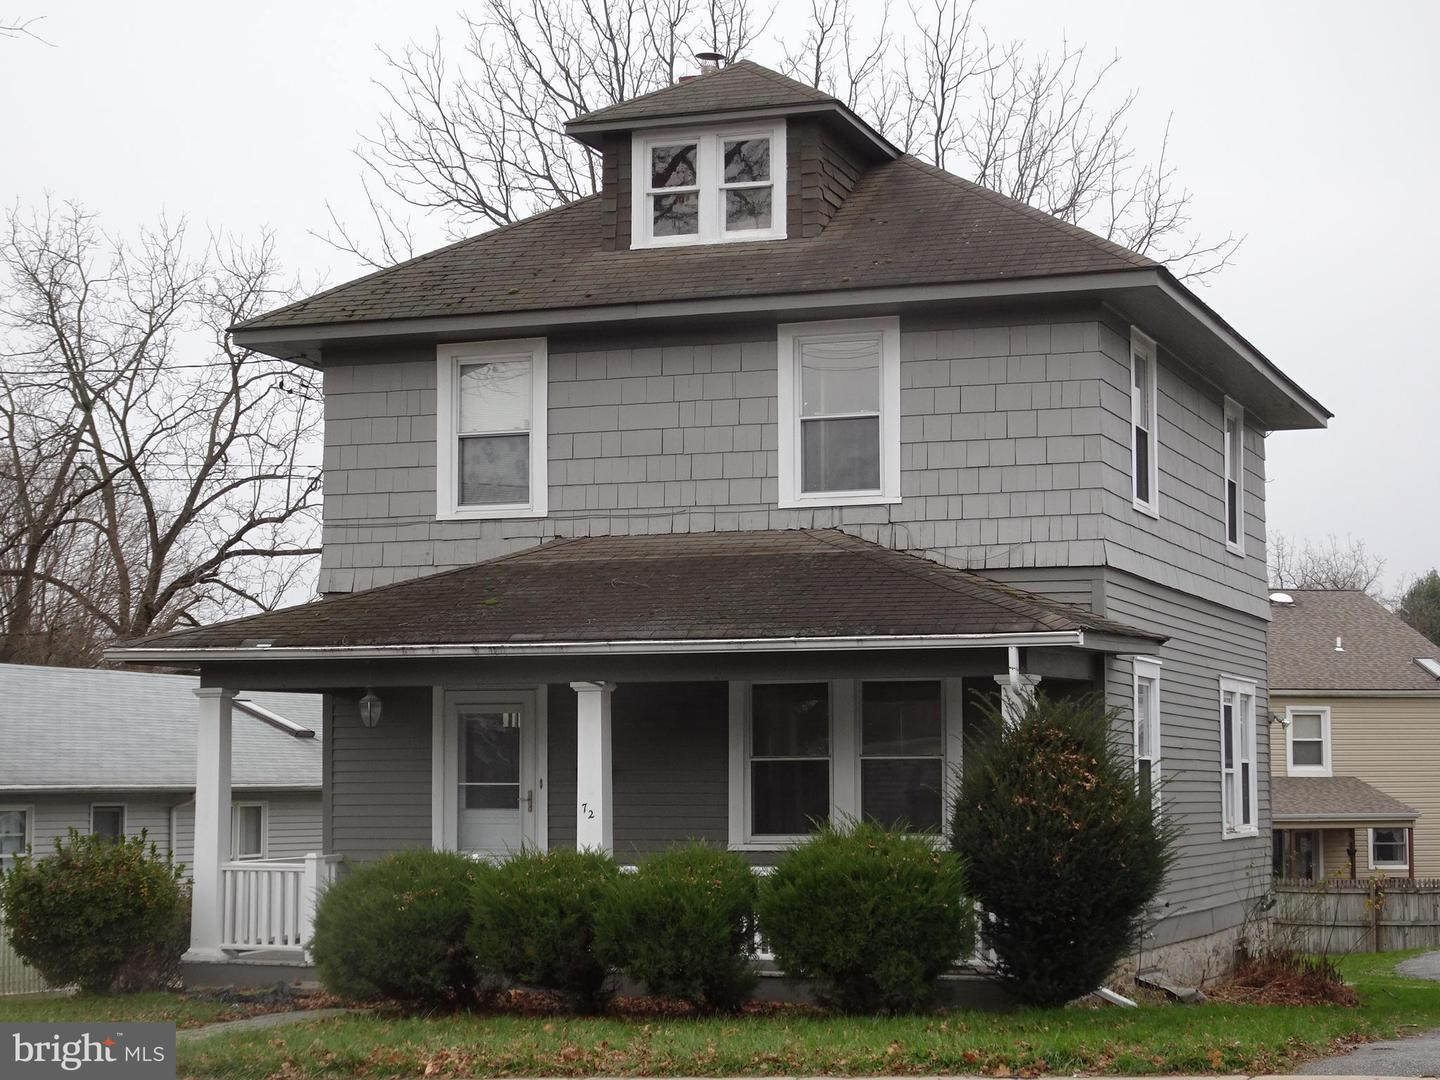 72 S Sproul Road Broomall, PA 19008